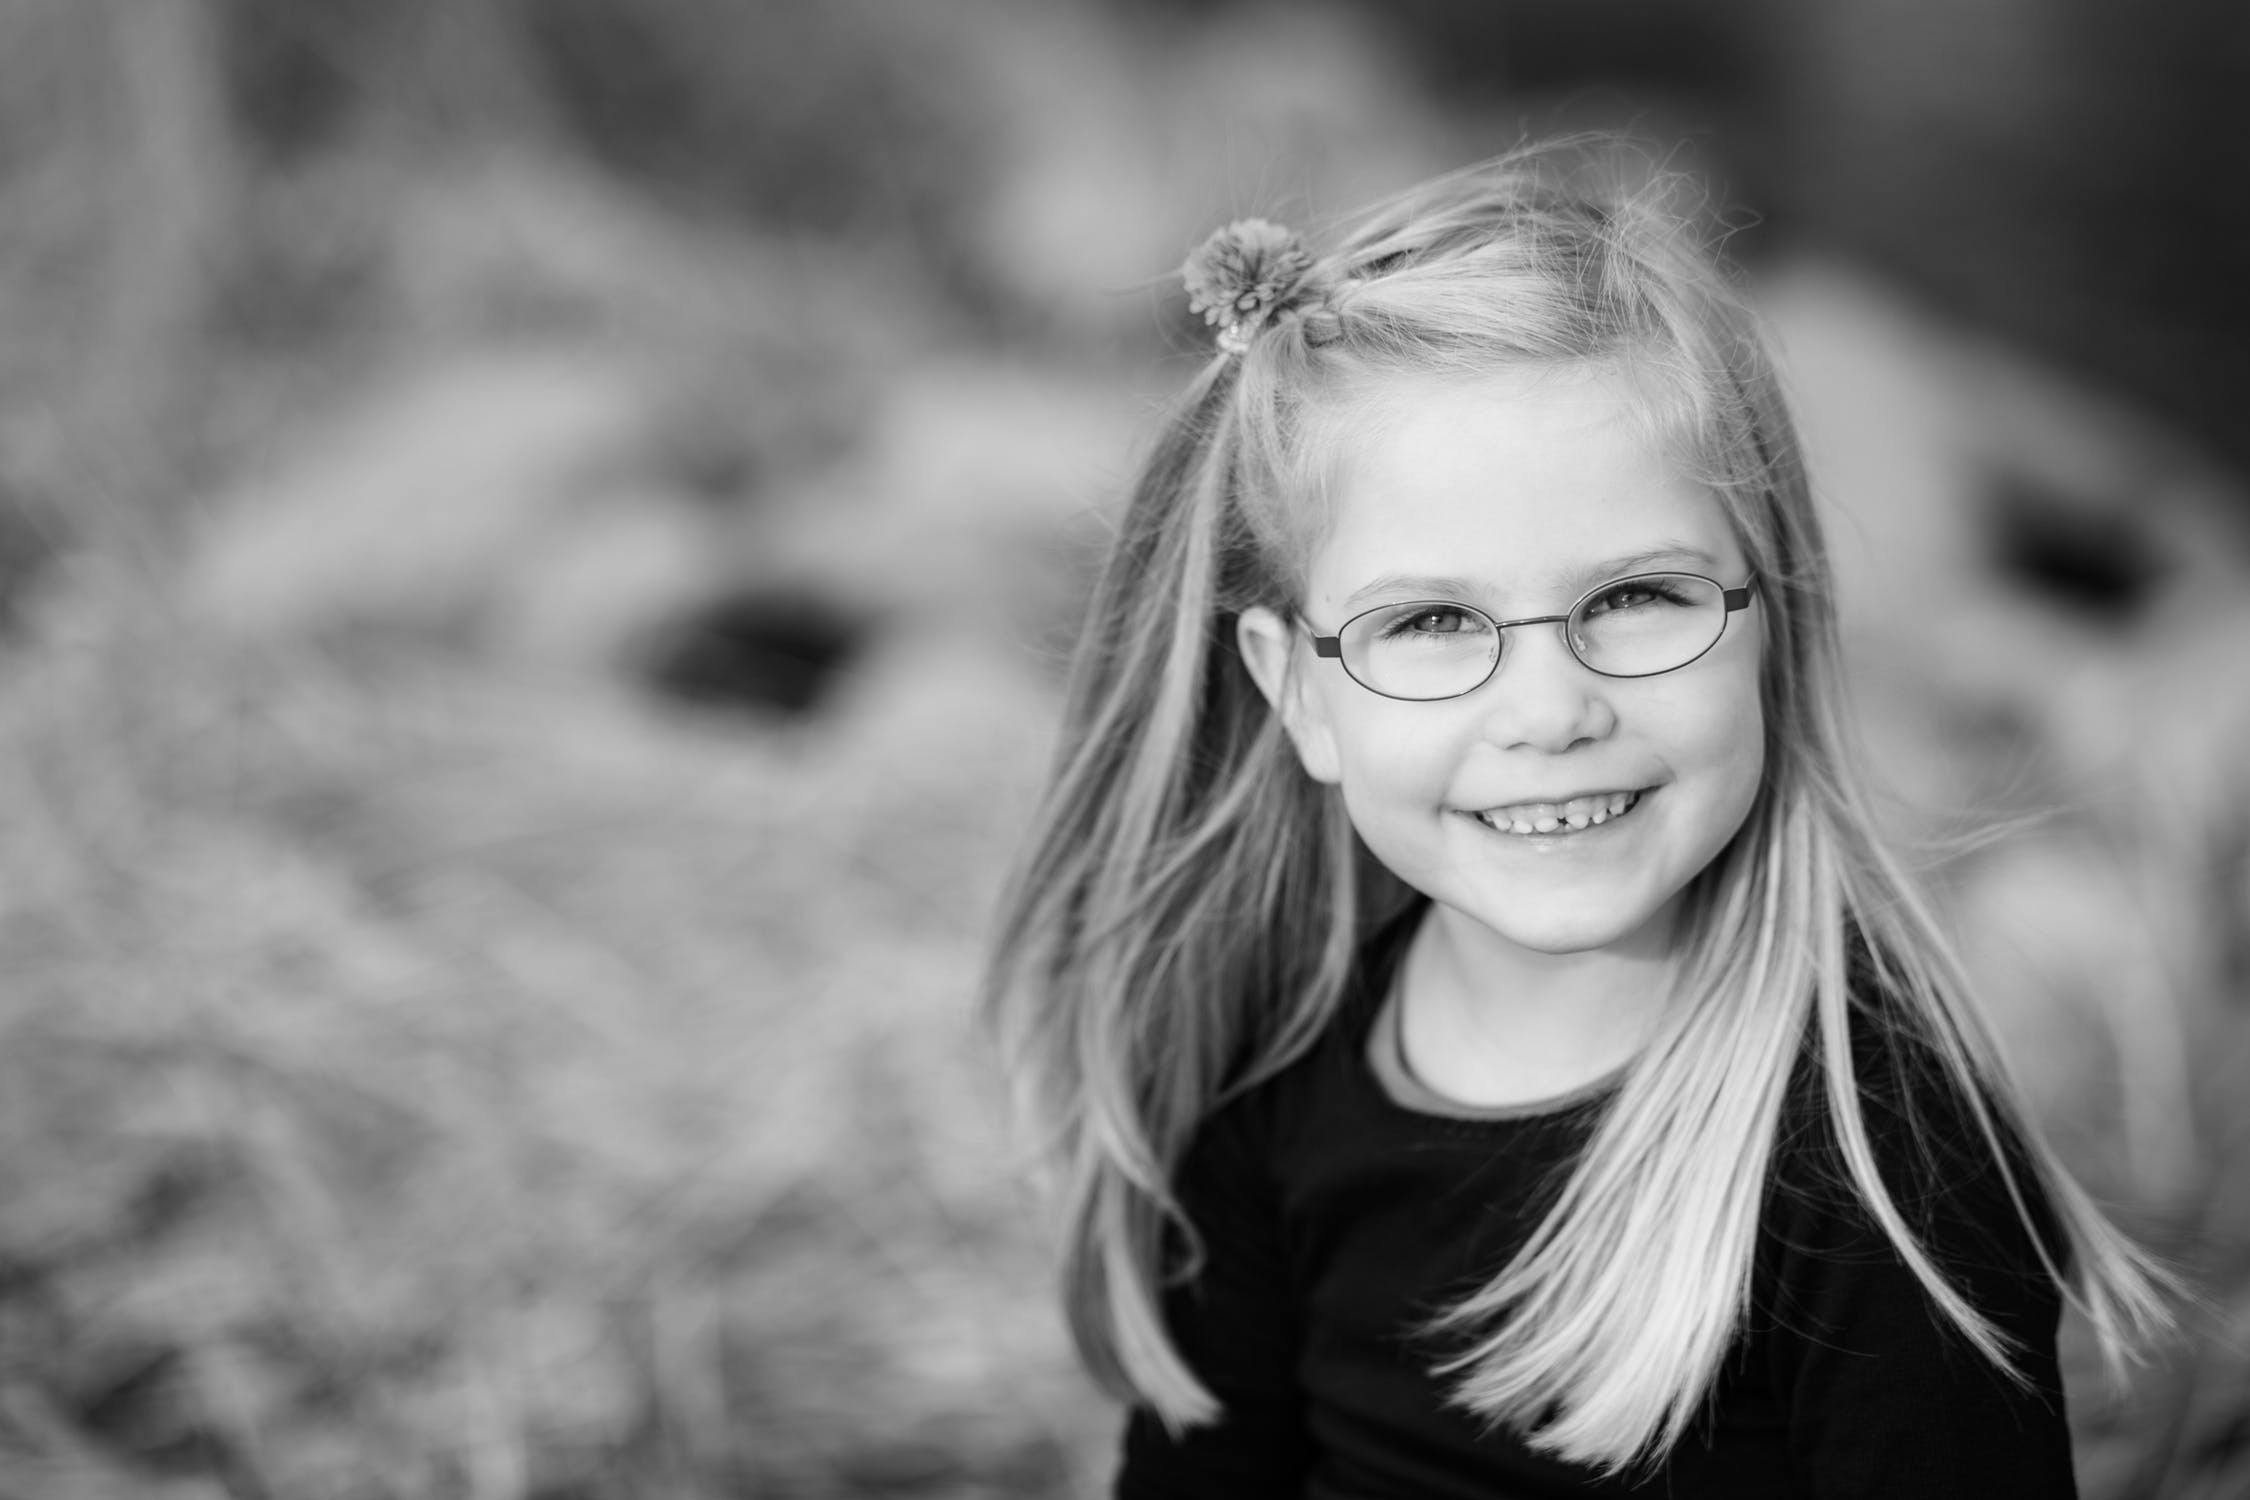 Image of a happy child with glasses